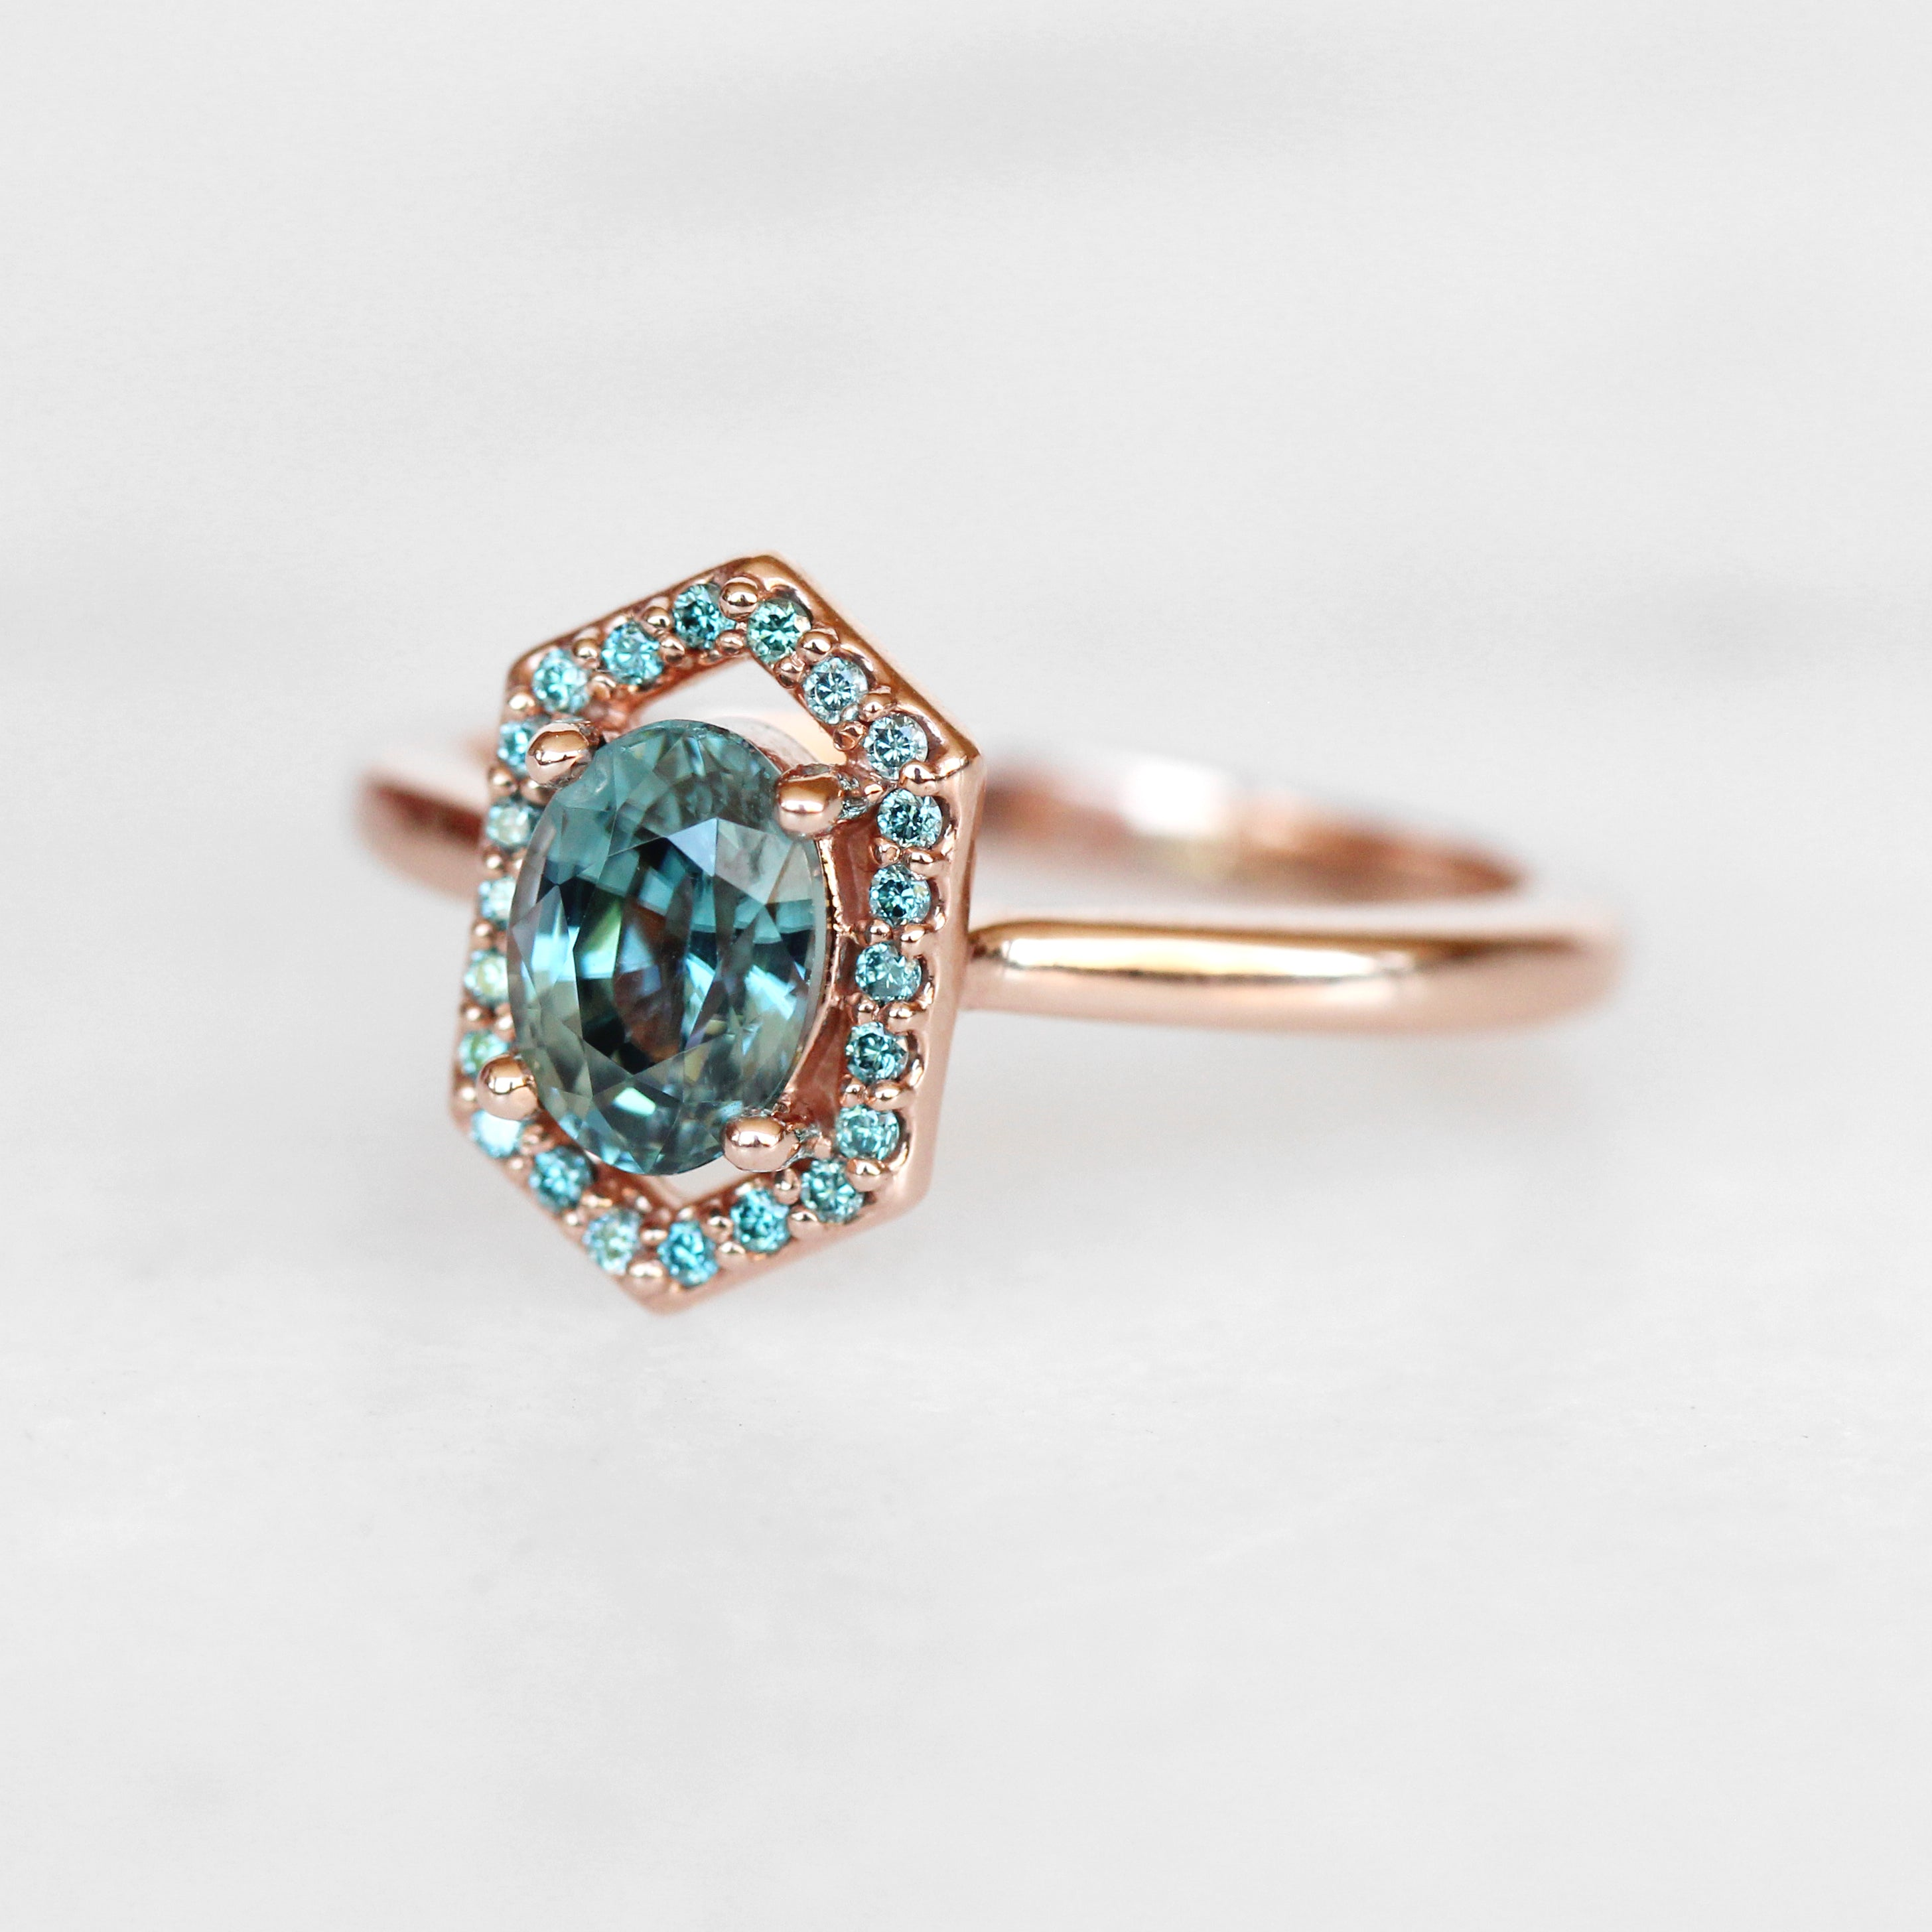 Etta ring with blue zircon and aqua diamonds - 14k gold of choice - made to order - Celestial Diamonds ® by Midwinter Co.